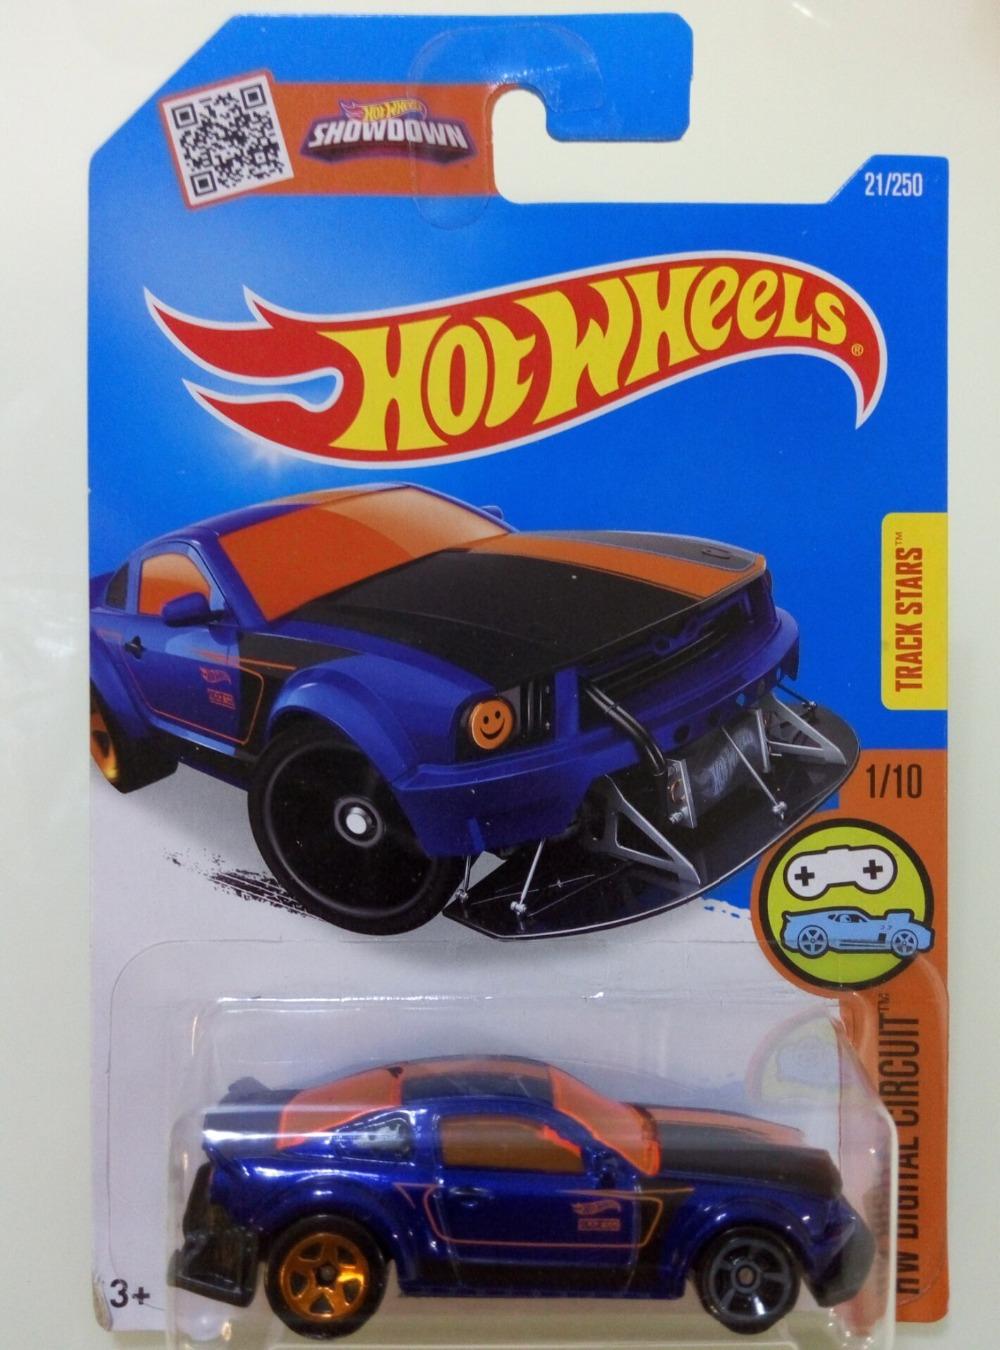 2005 FORD MUSTANG,Hot wheels 1:64 alloy car model,children's educational car toys,Concept cars(China (Mainland))